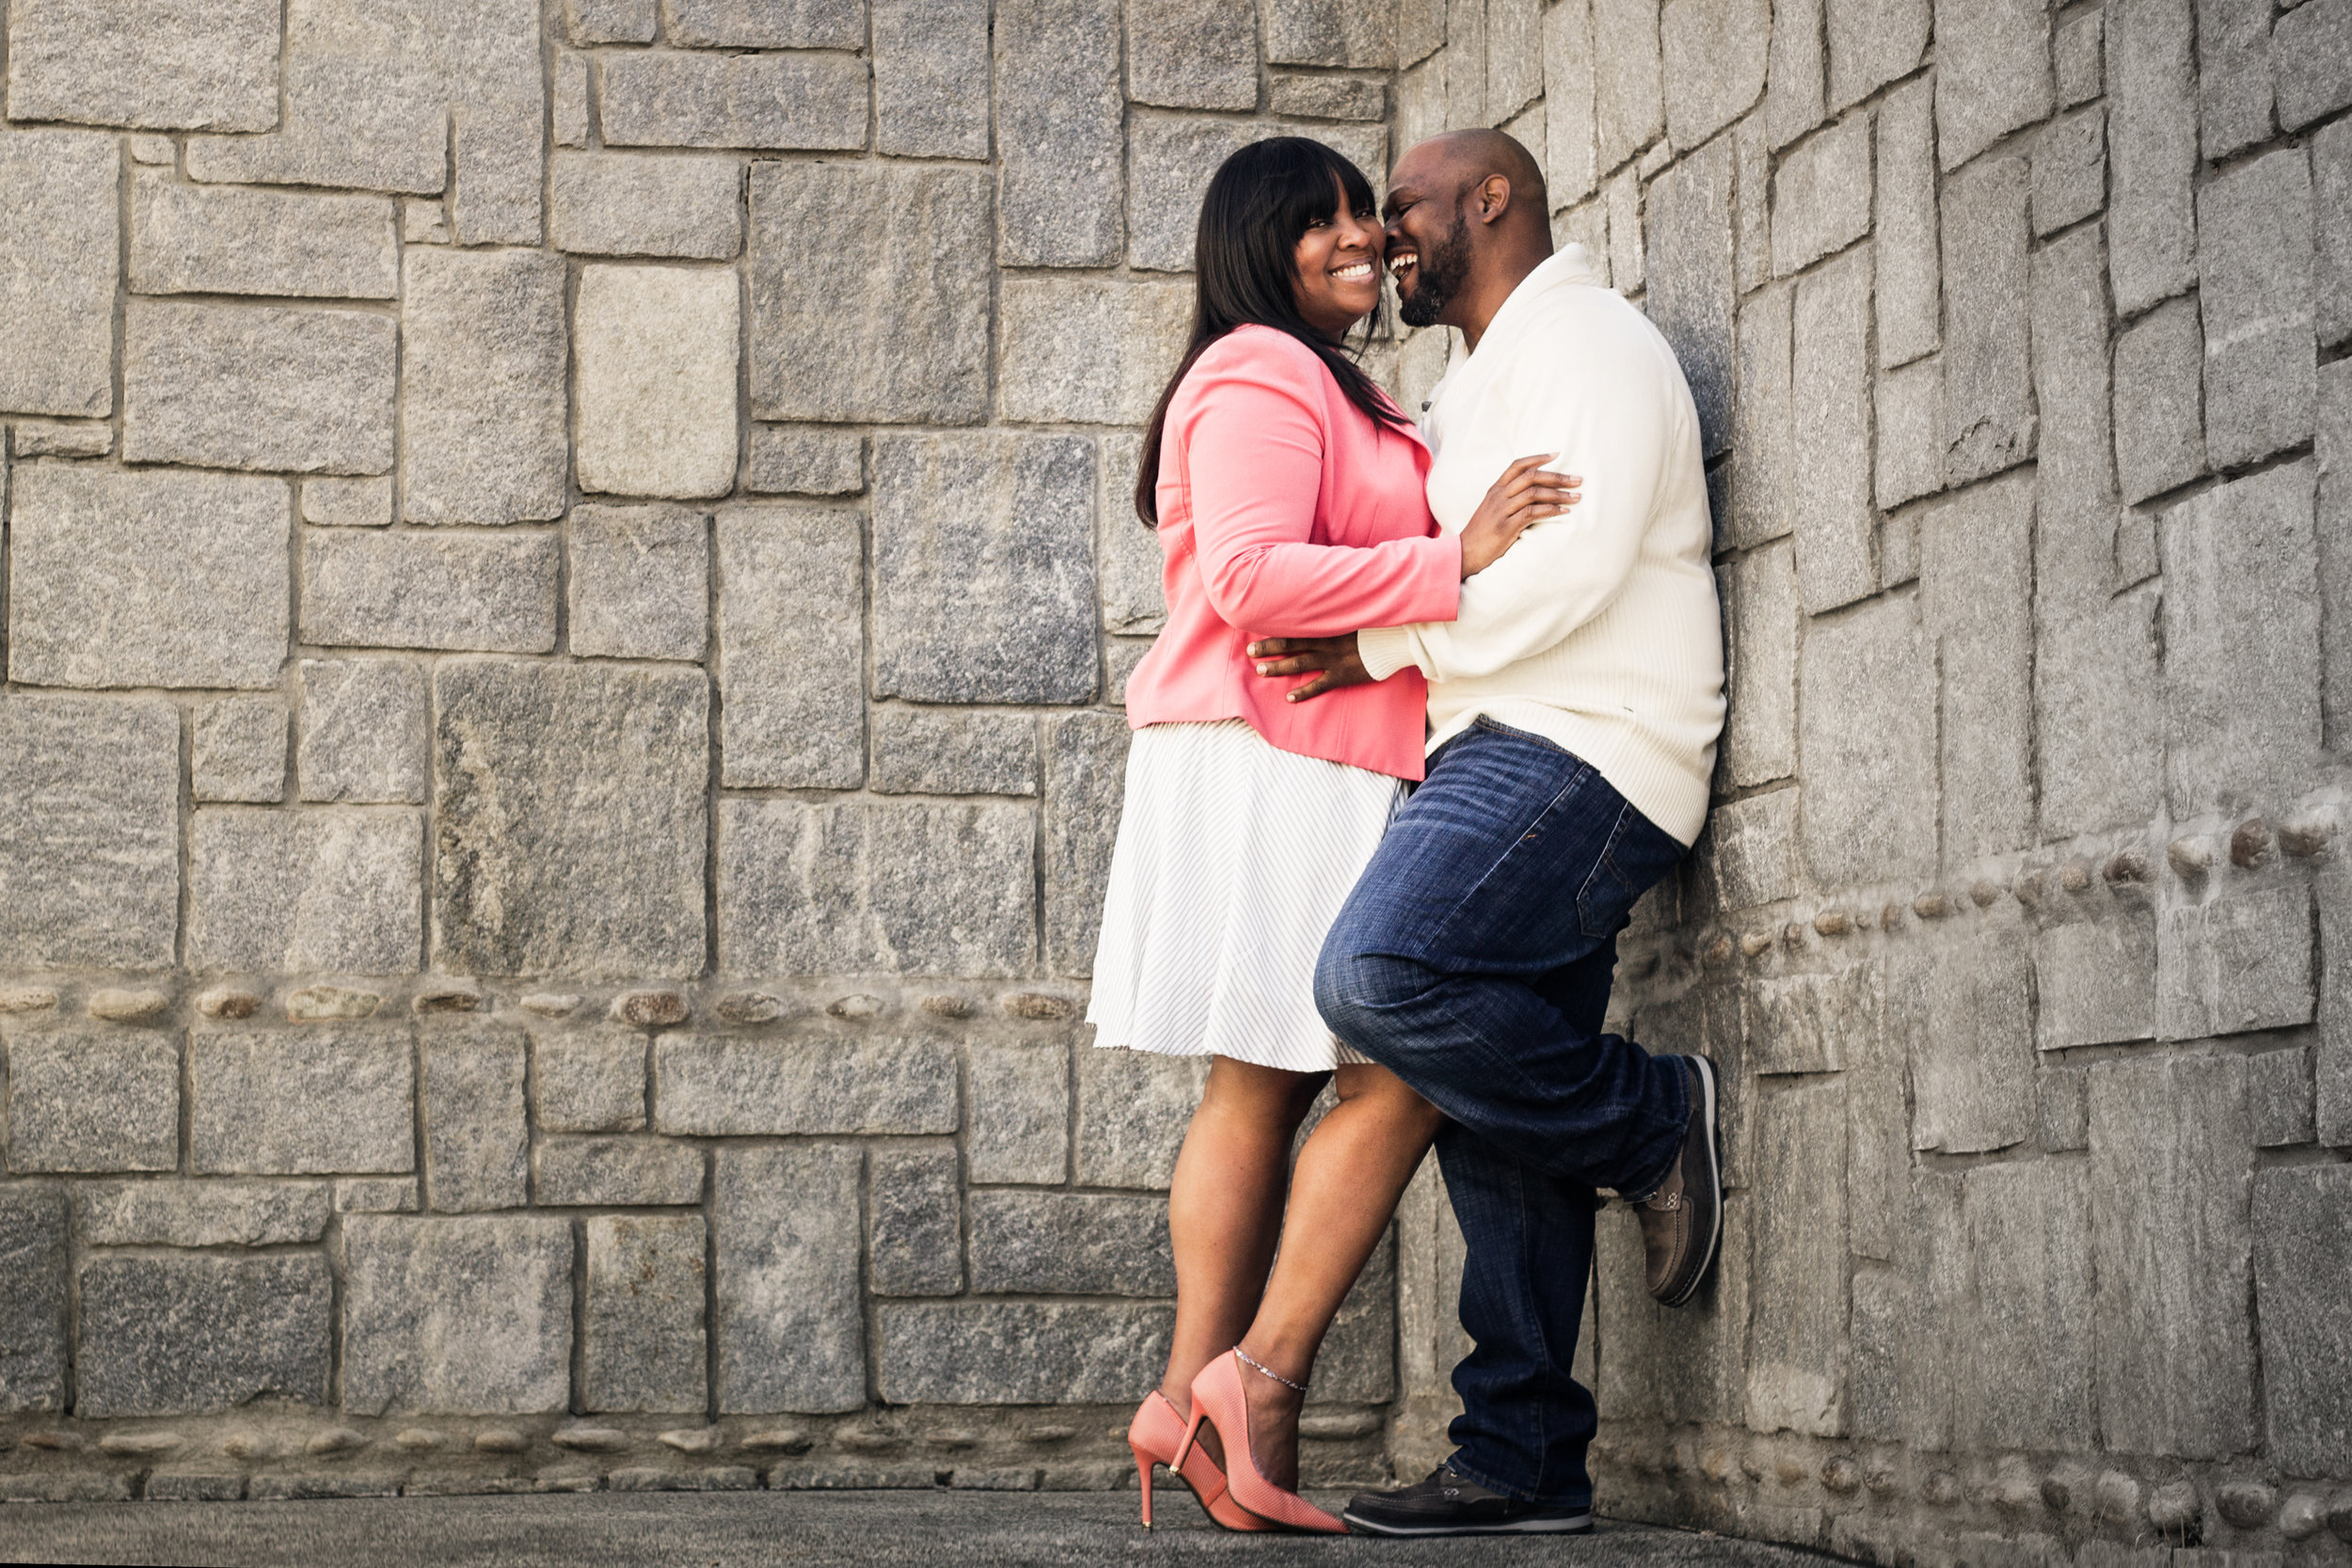 Historic-Fourth-Ward-Park-engagement-photoshoot-with-young-black-couple-by-Atlanta-photographer-Chanel-French